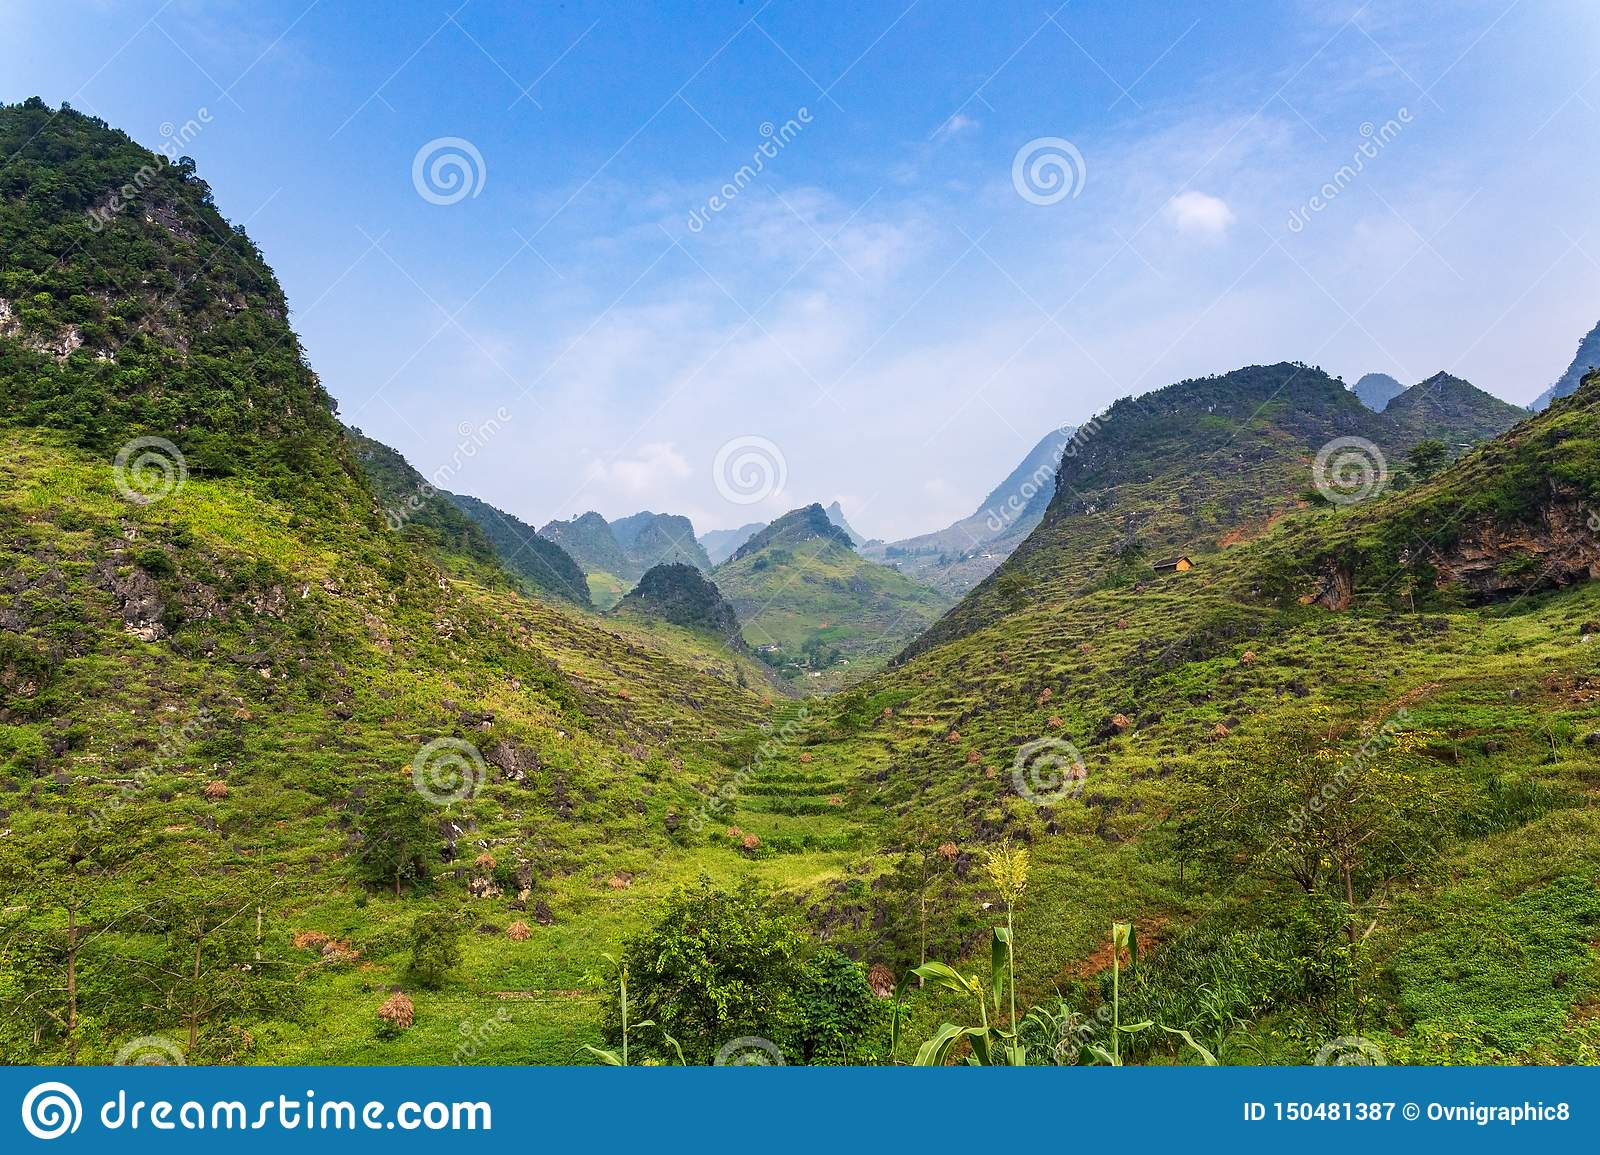 Mountains in Ma Pi Leng Pass in Van, Ha Giang Province, Northern Vietnam